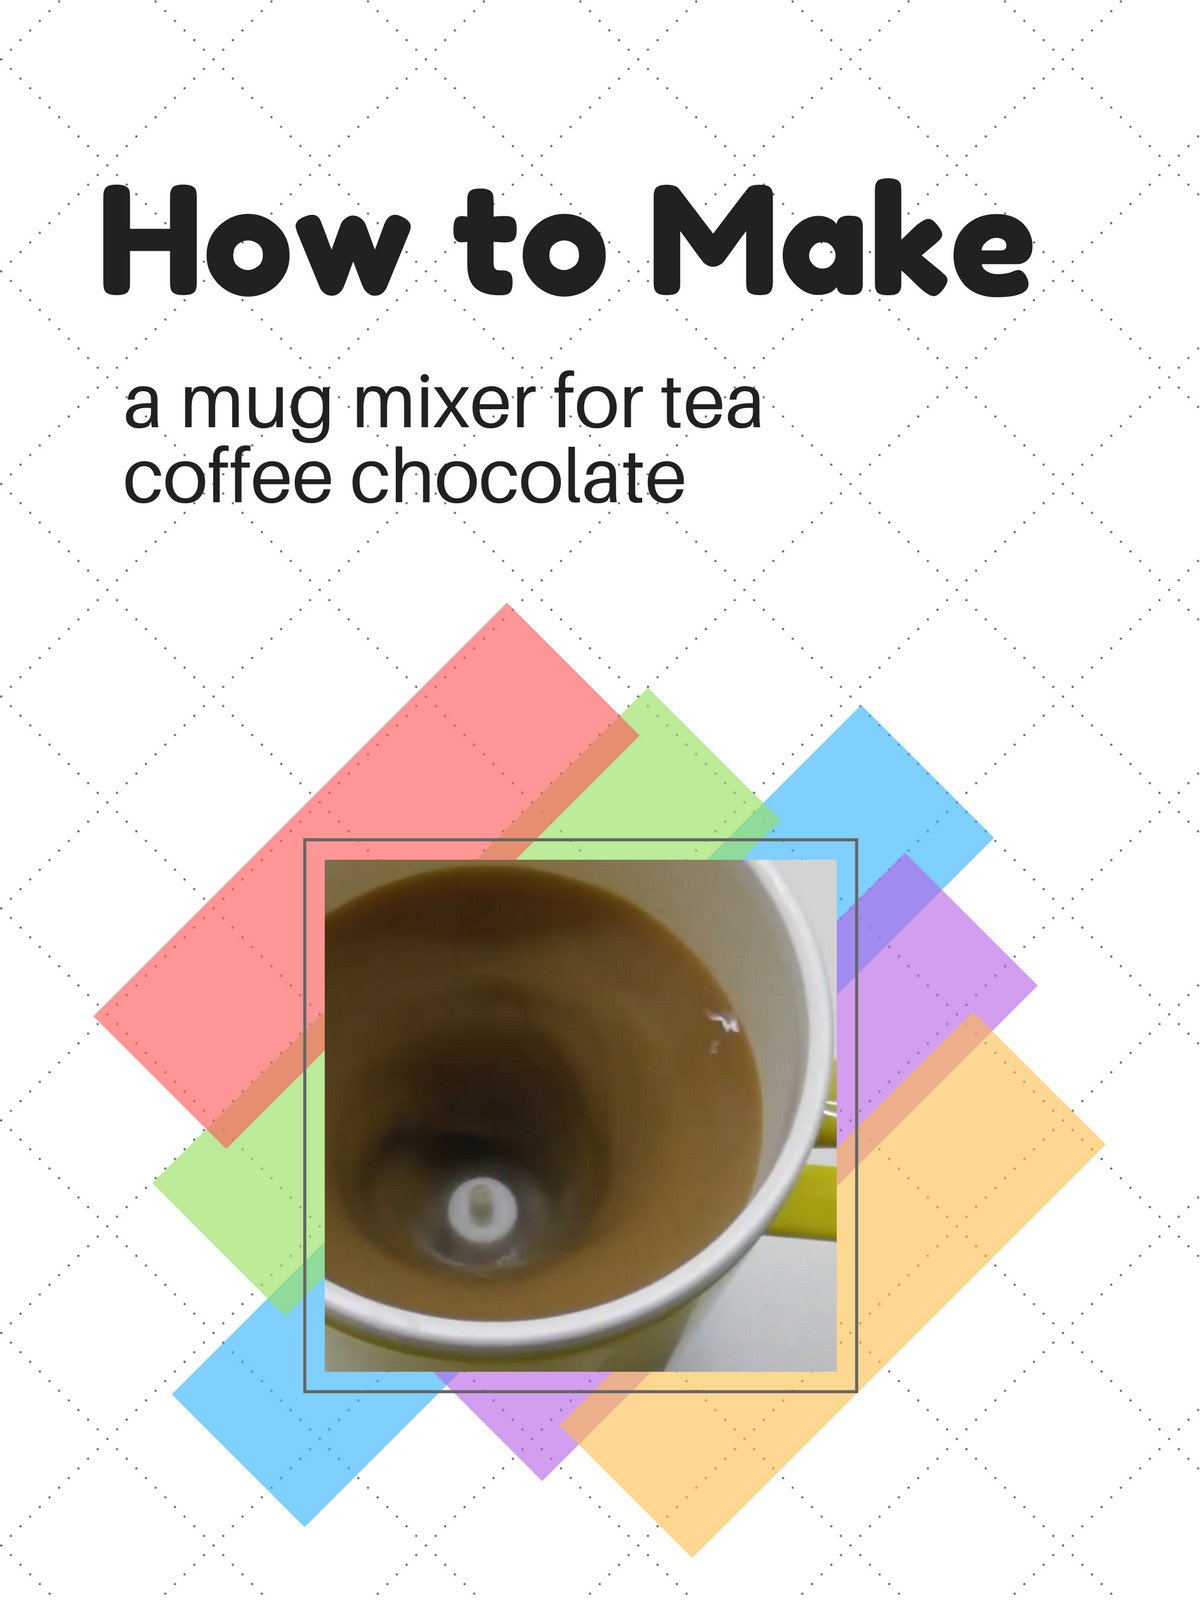 How to make a mug mixer for tea coffee chocolate